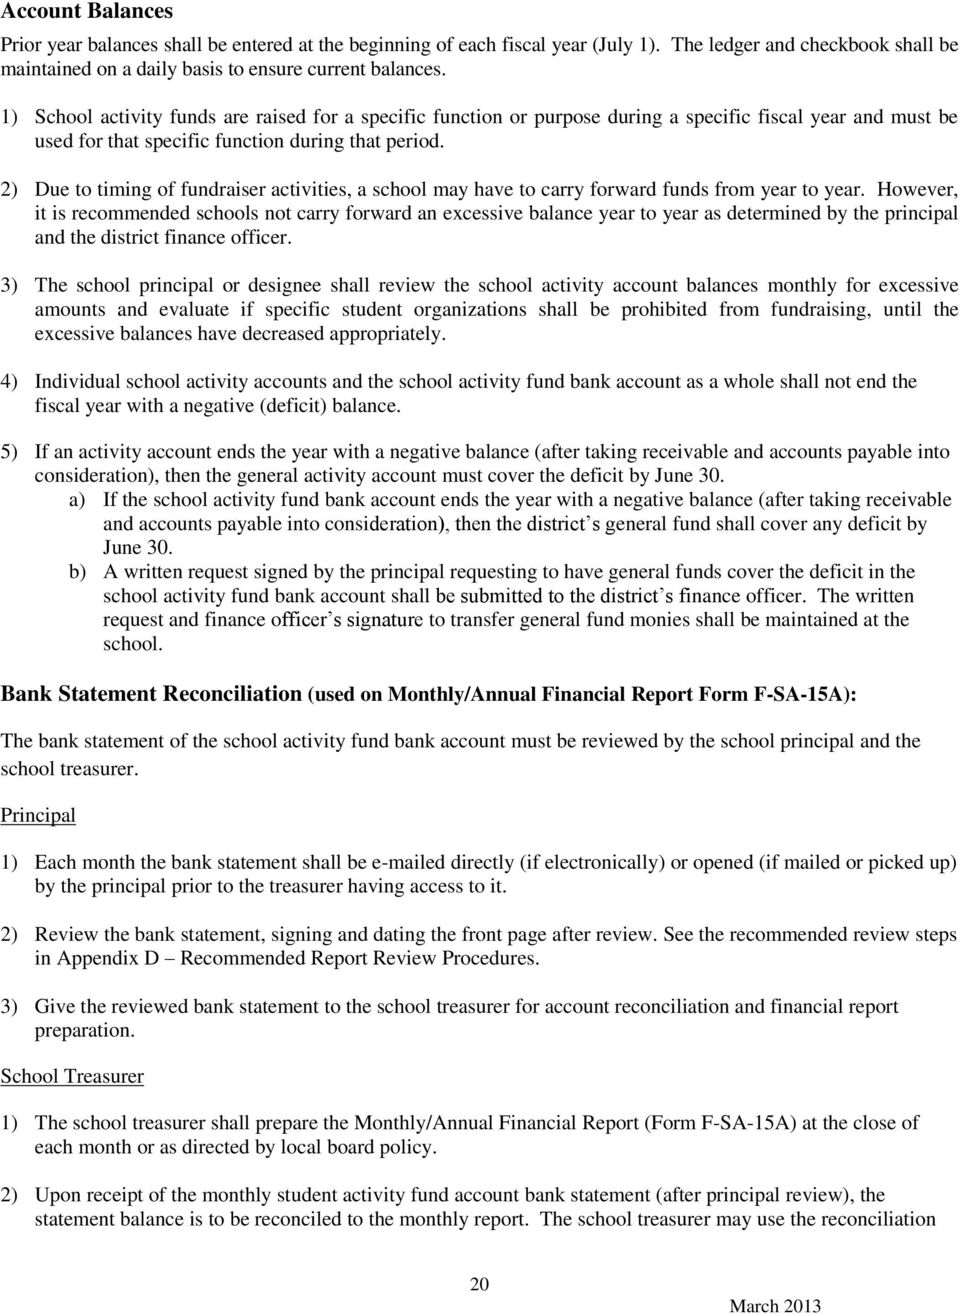 Accounting Procedures For Kentucky School Activity Funds Pdf